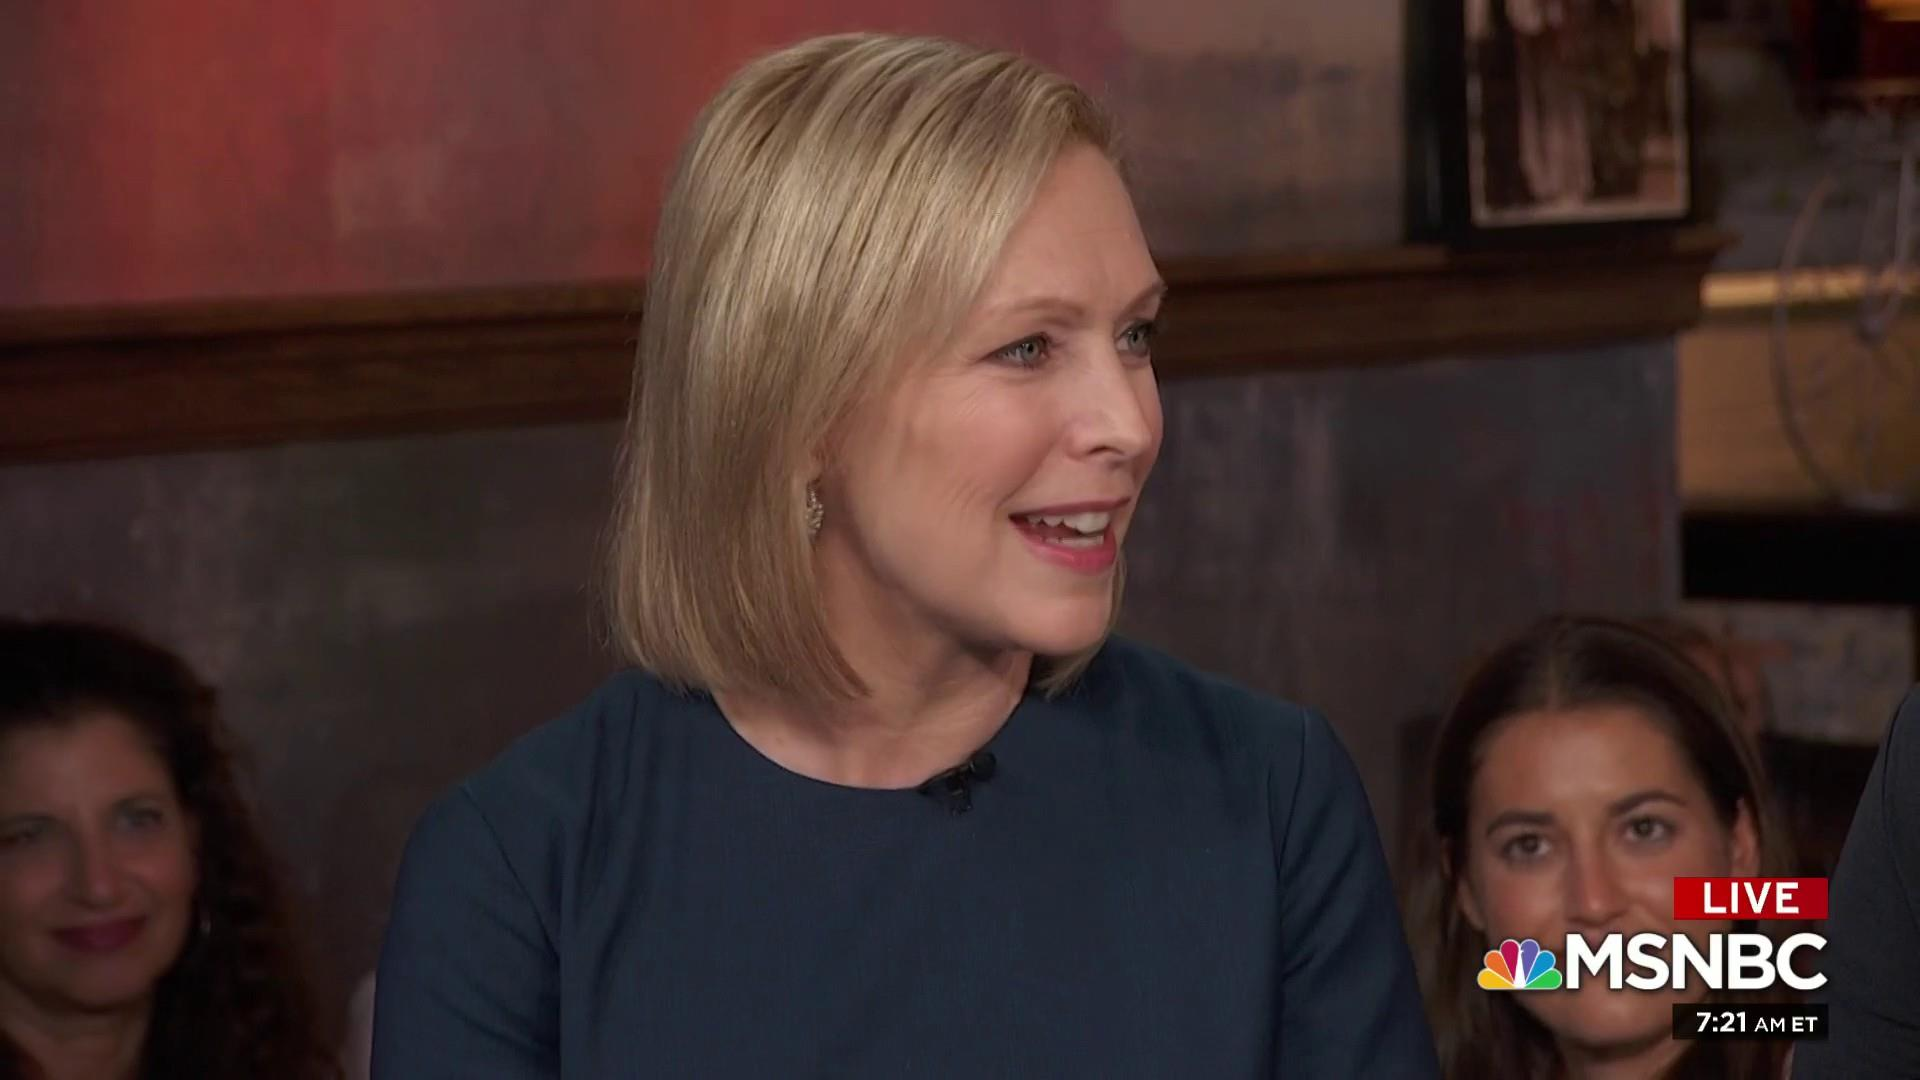 Gillibrand: Picture a working mom in WH rather than a misogynist